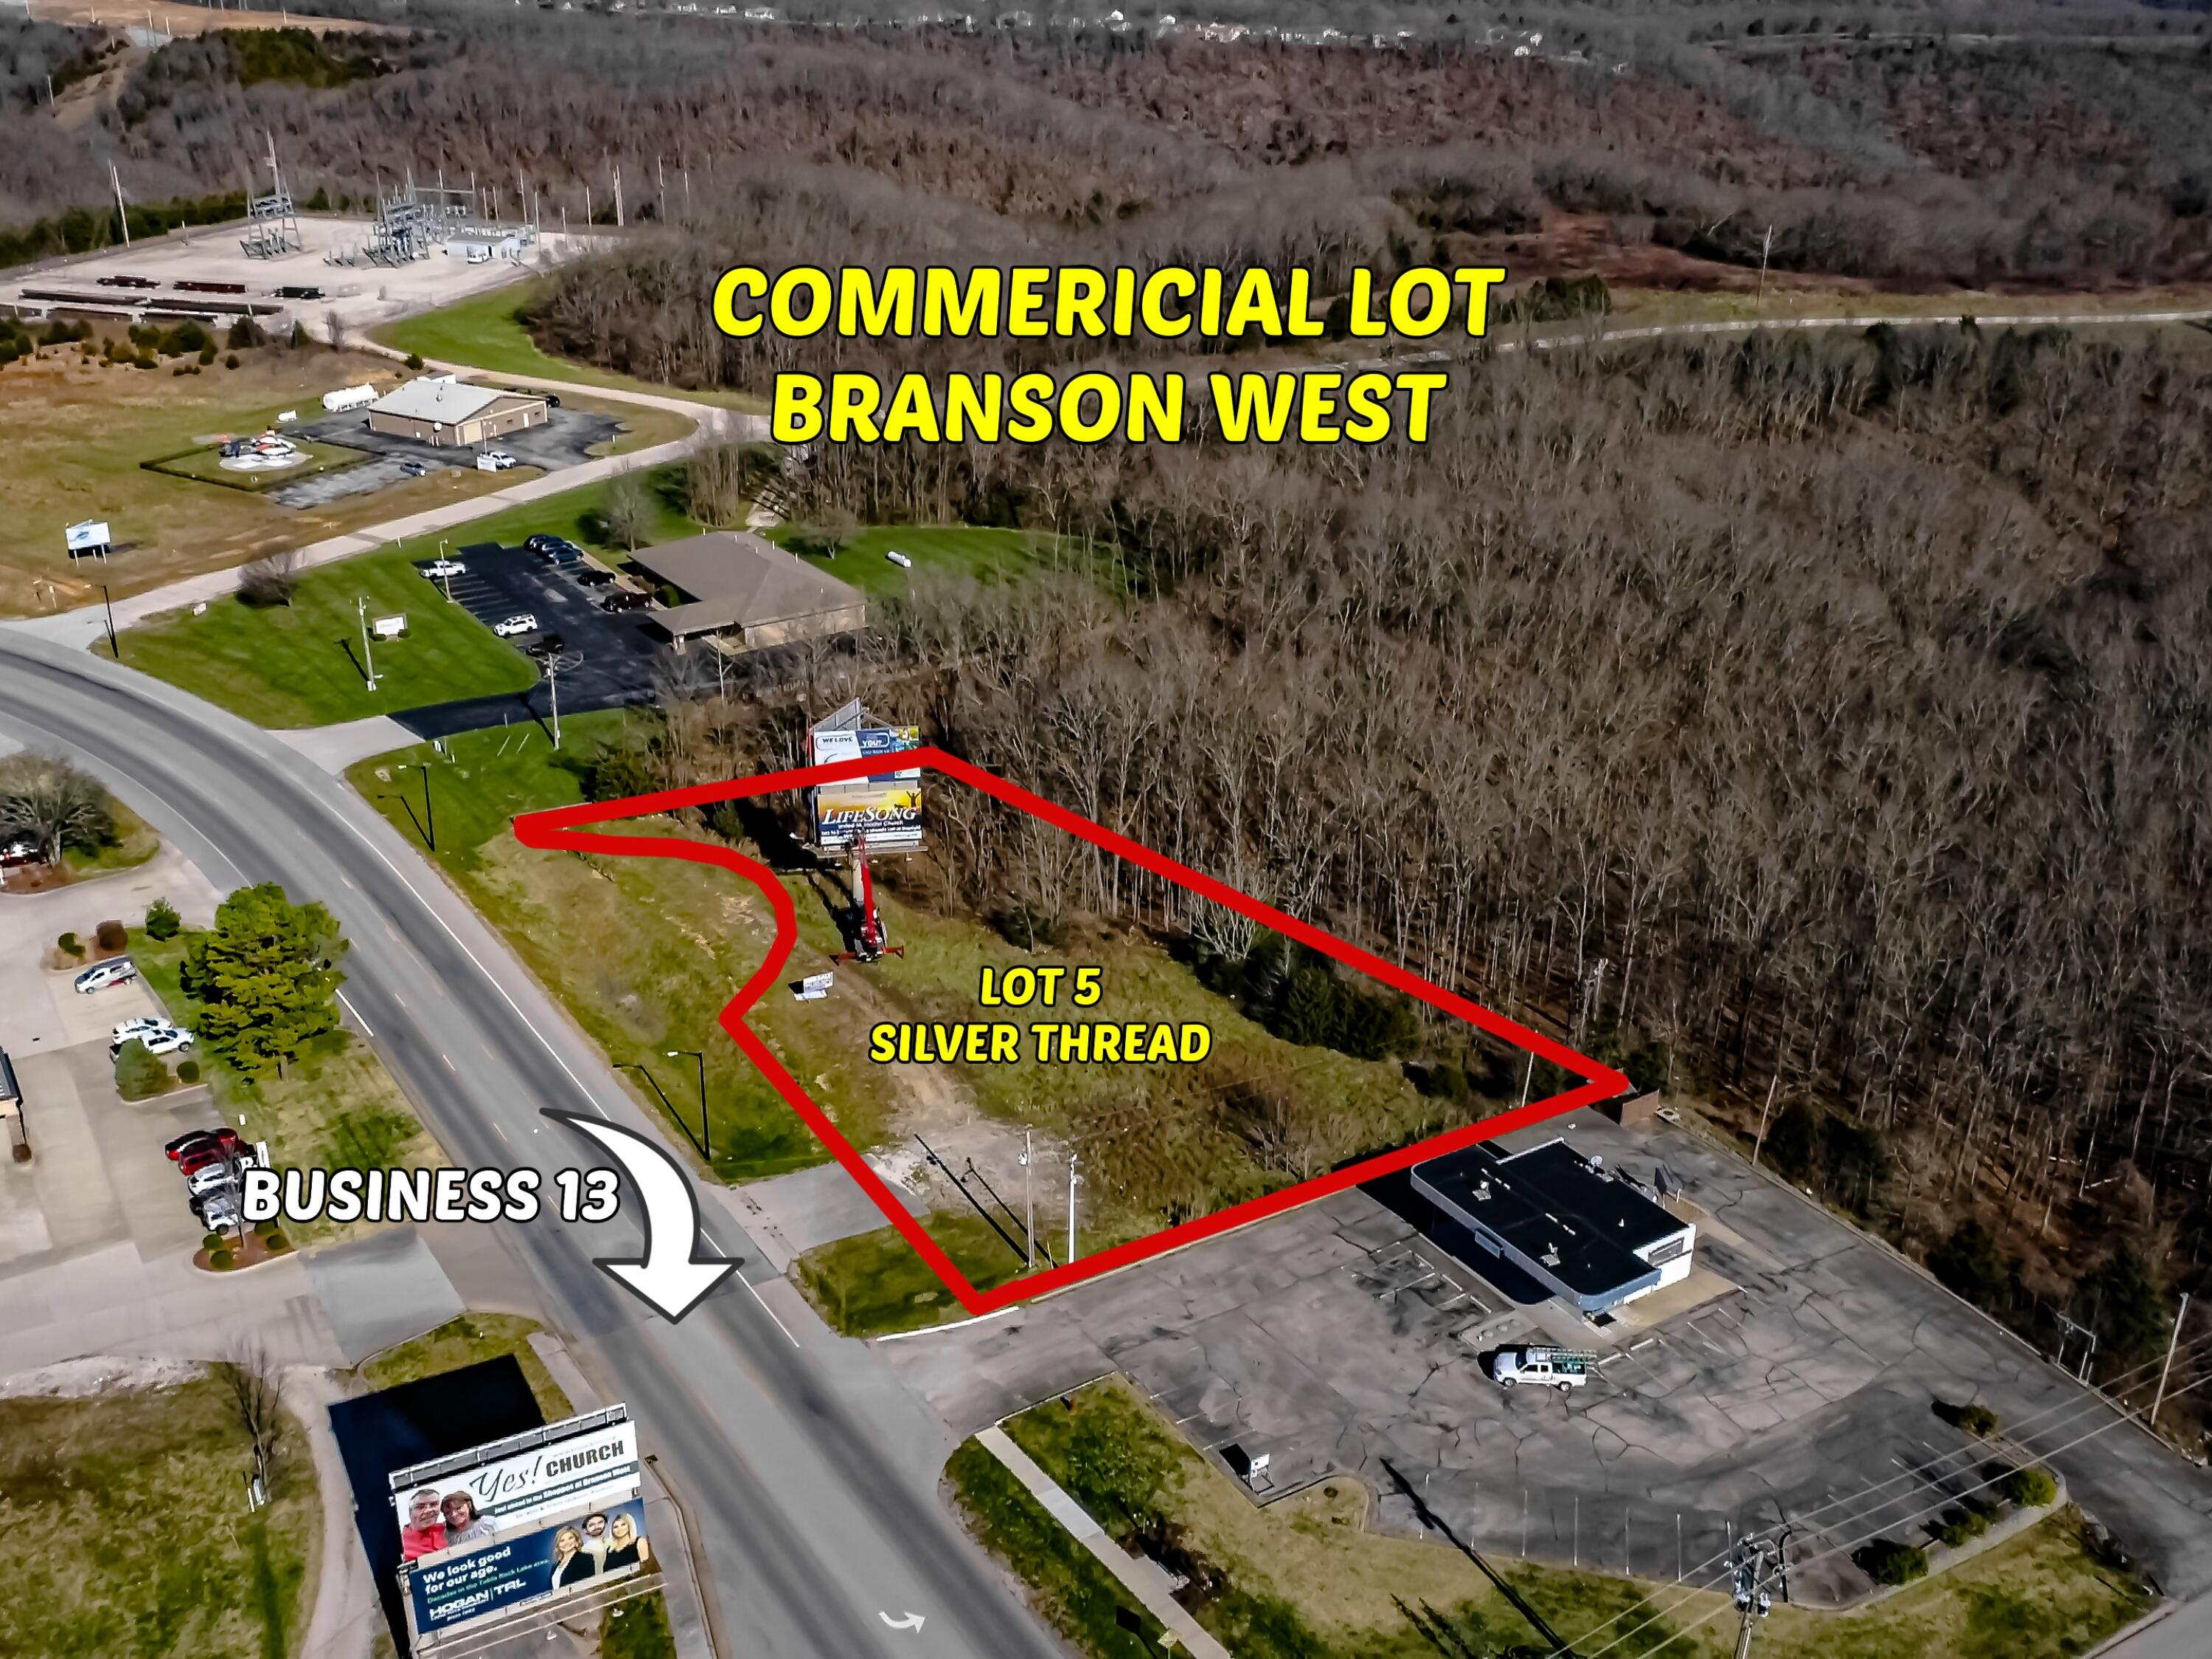 18540 Business 13, Branson West, MO 65737 - Branson West, MO real estate listing